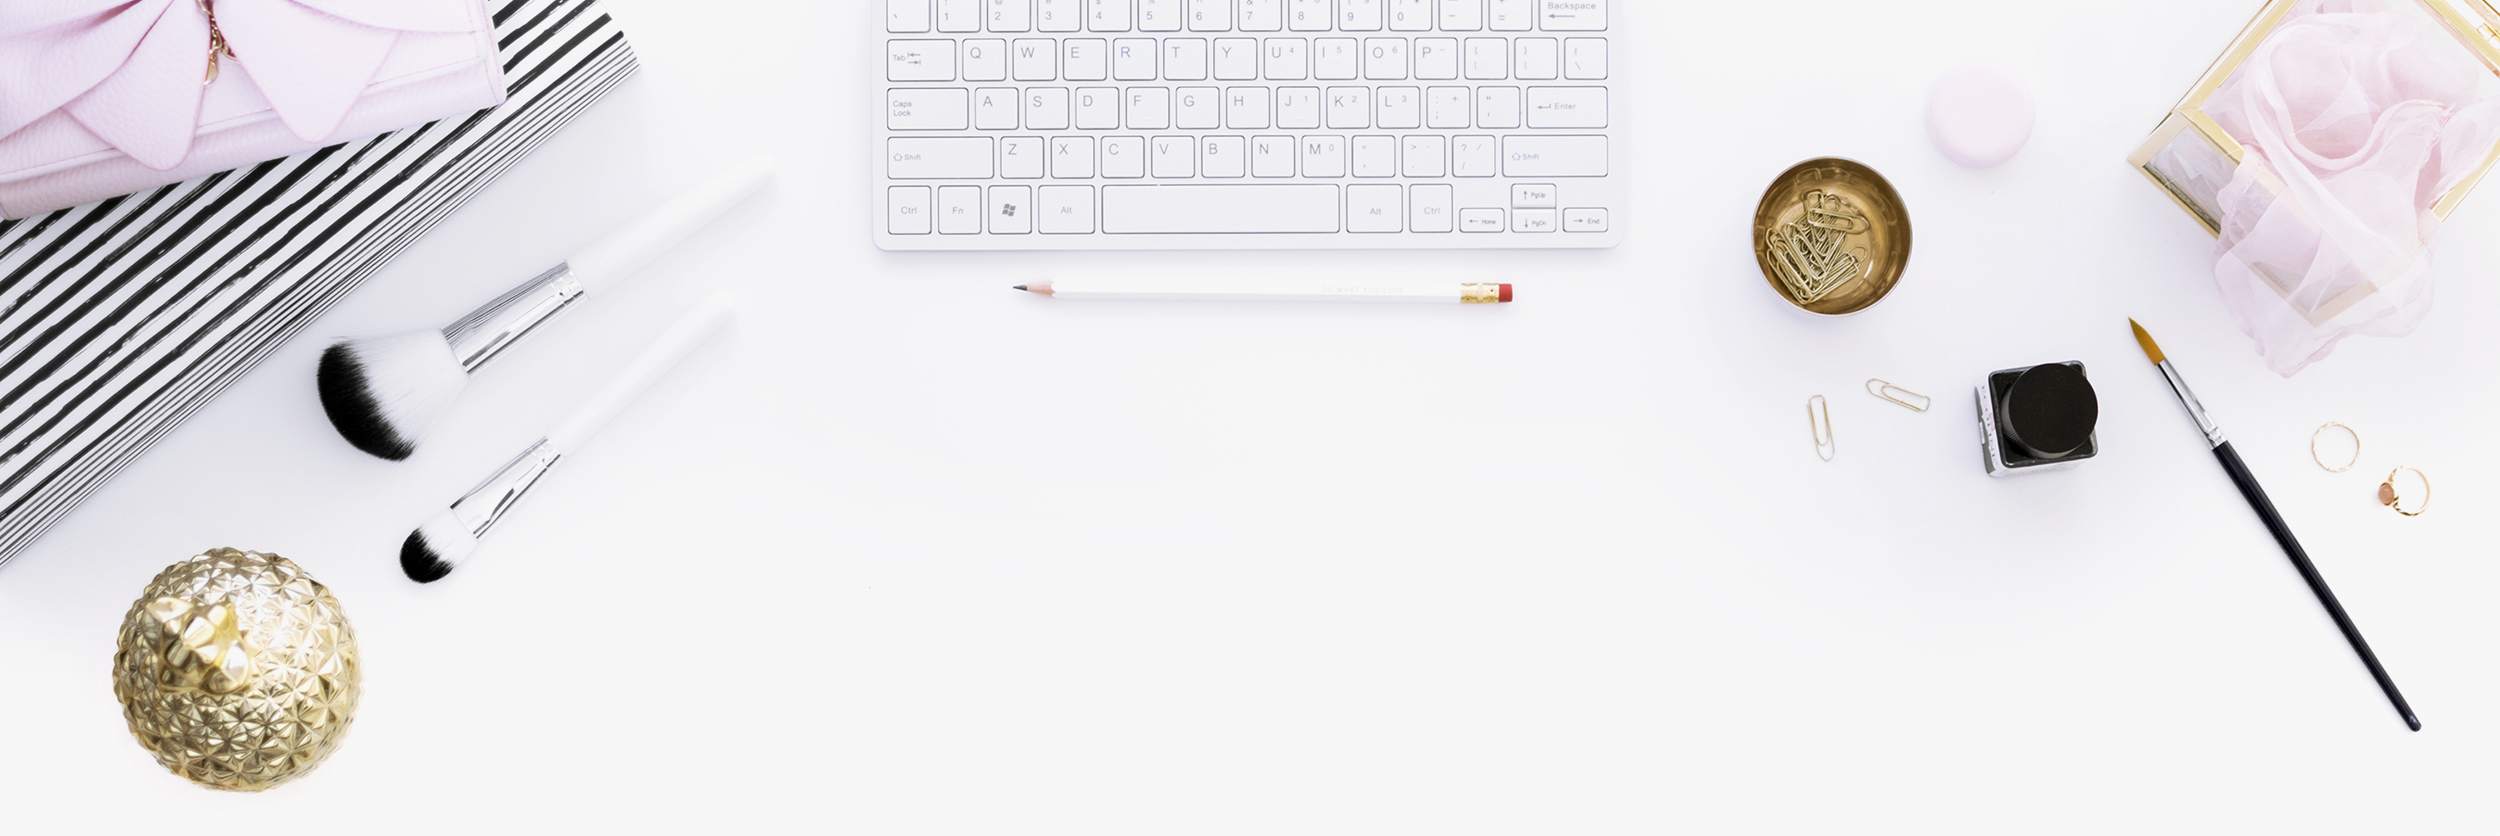 Keyboard, art materials and feminine accessories